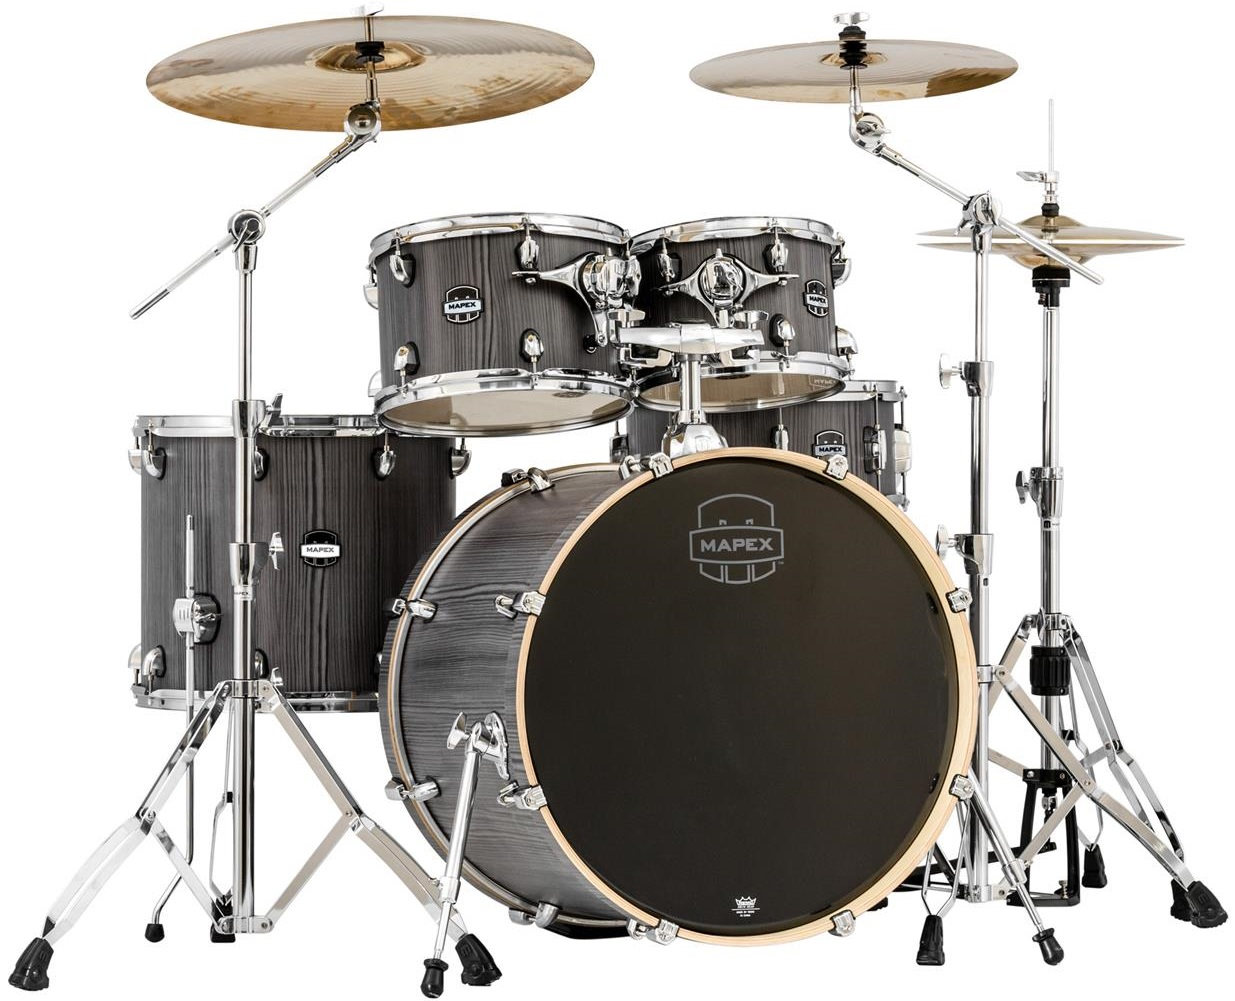 Fotografie Mapex Mars studio set Smoke Wood